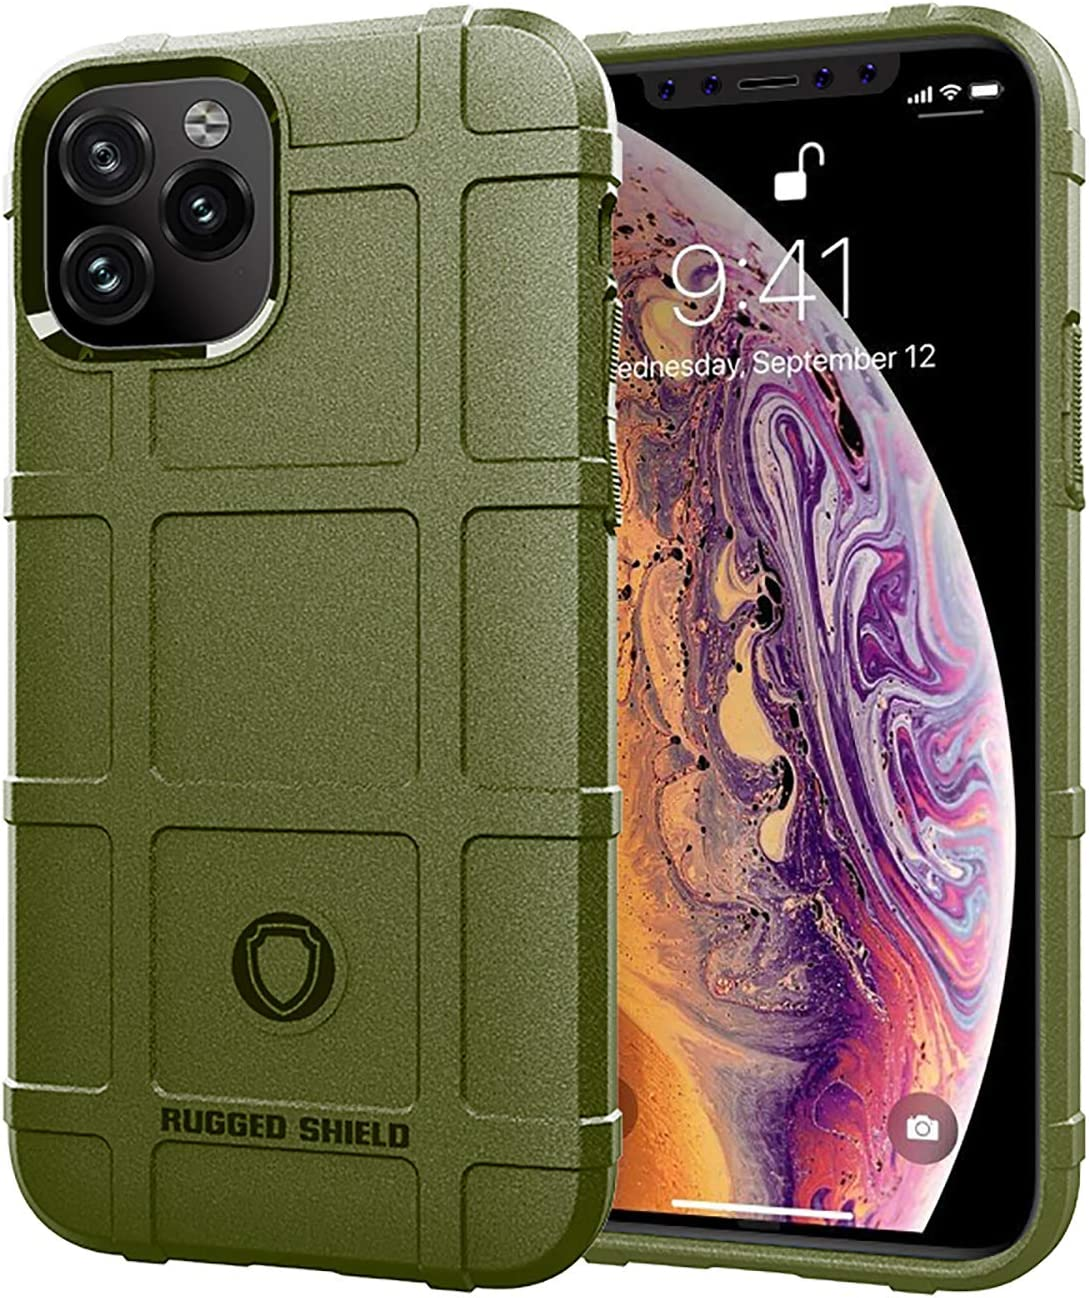 niter for iPhone 11 Case Green Ultra Thin Slim Rubber Gel Soft TPU Thick Shield Solid Armor Tactical Cover (iPhone 11, Green)